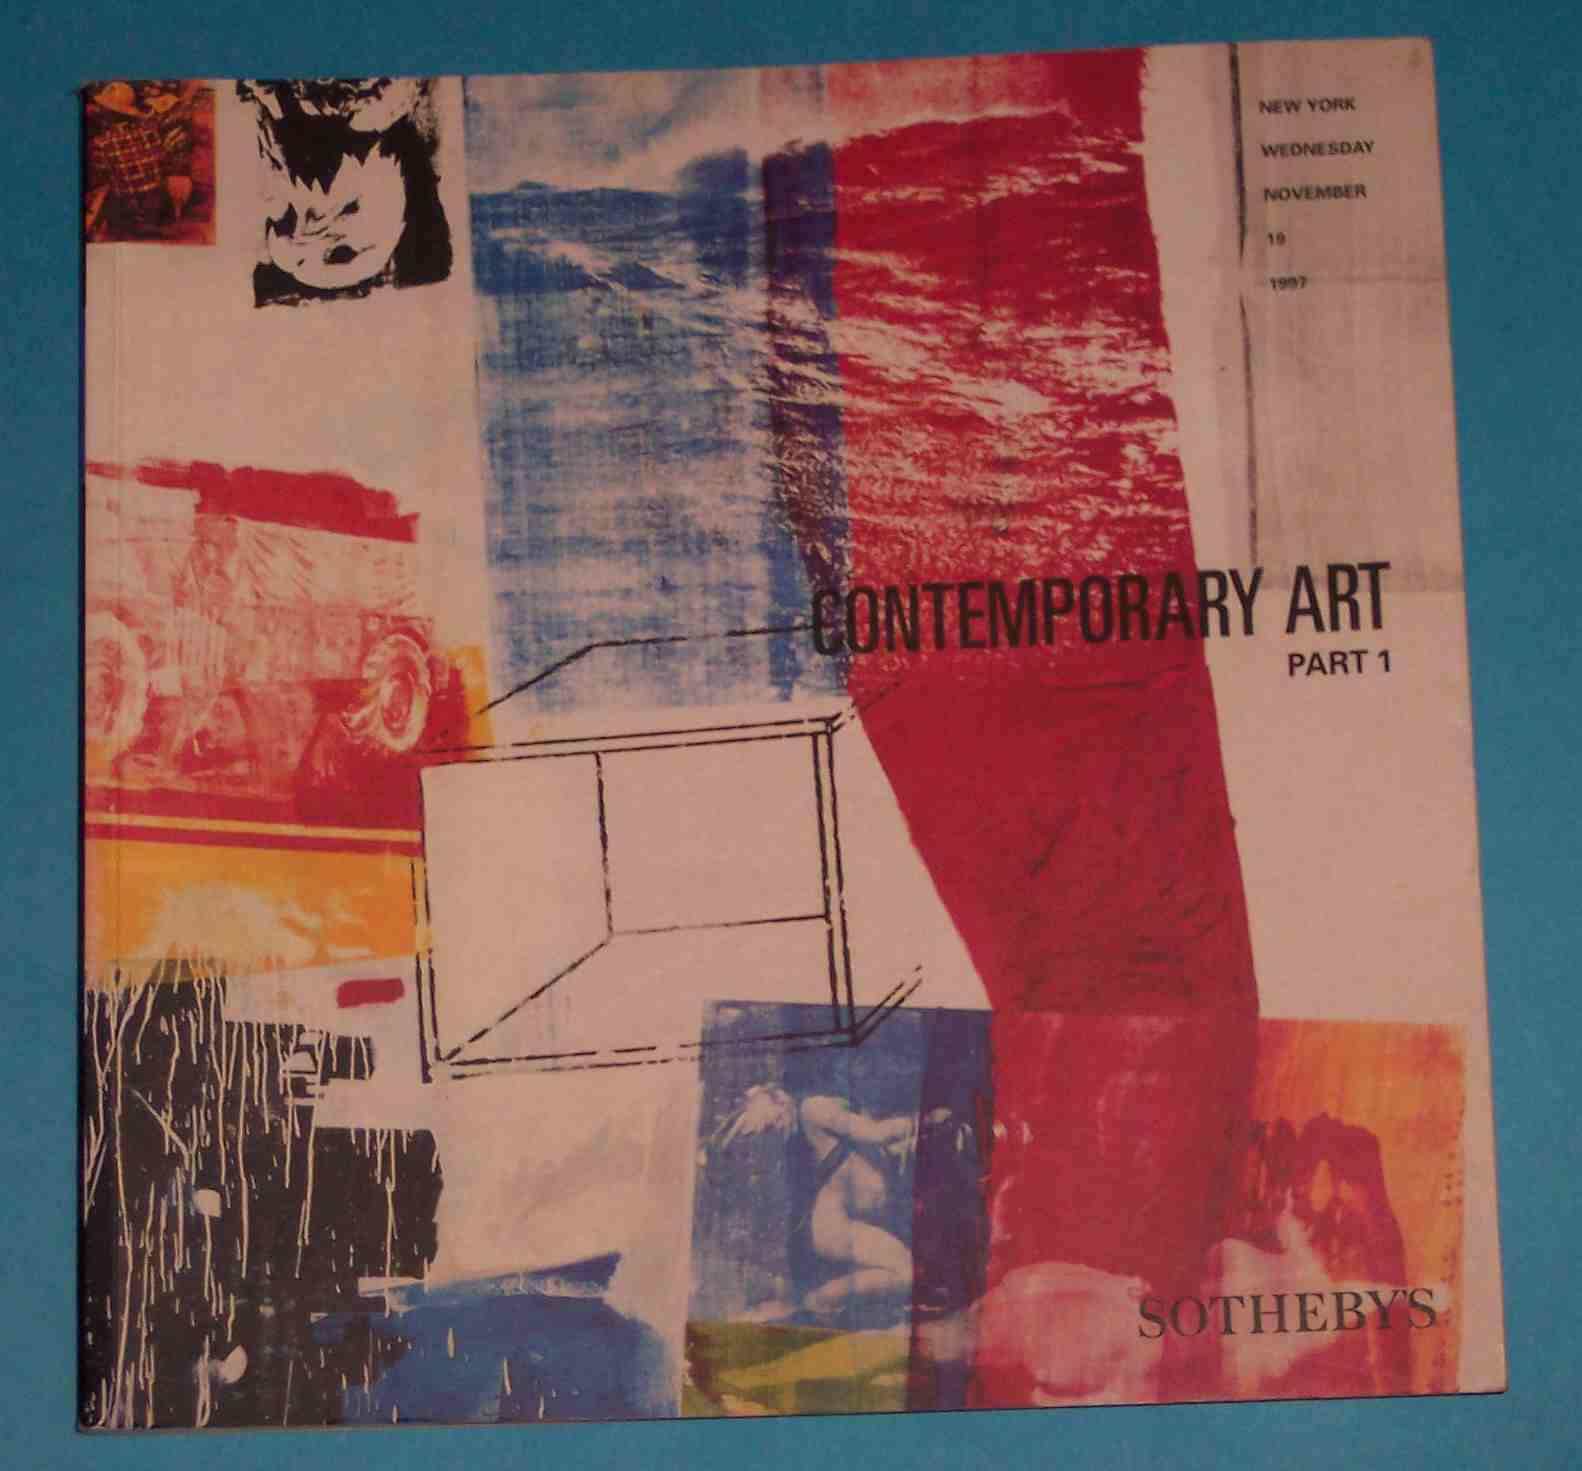 Image for Sotheby's Contemporary Art Part 1 New York November Wednesday 19 1997